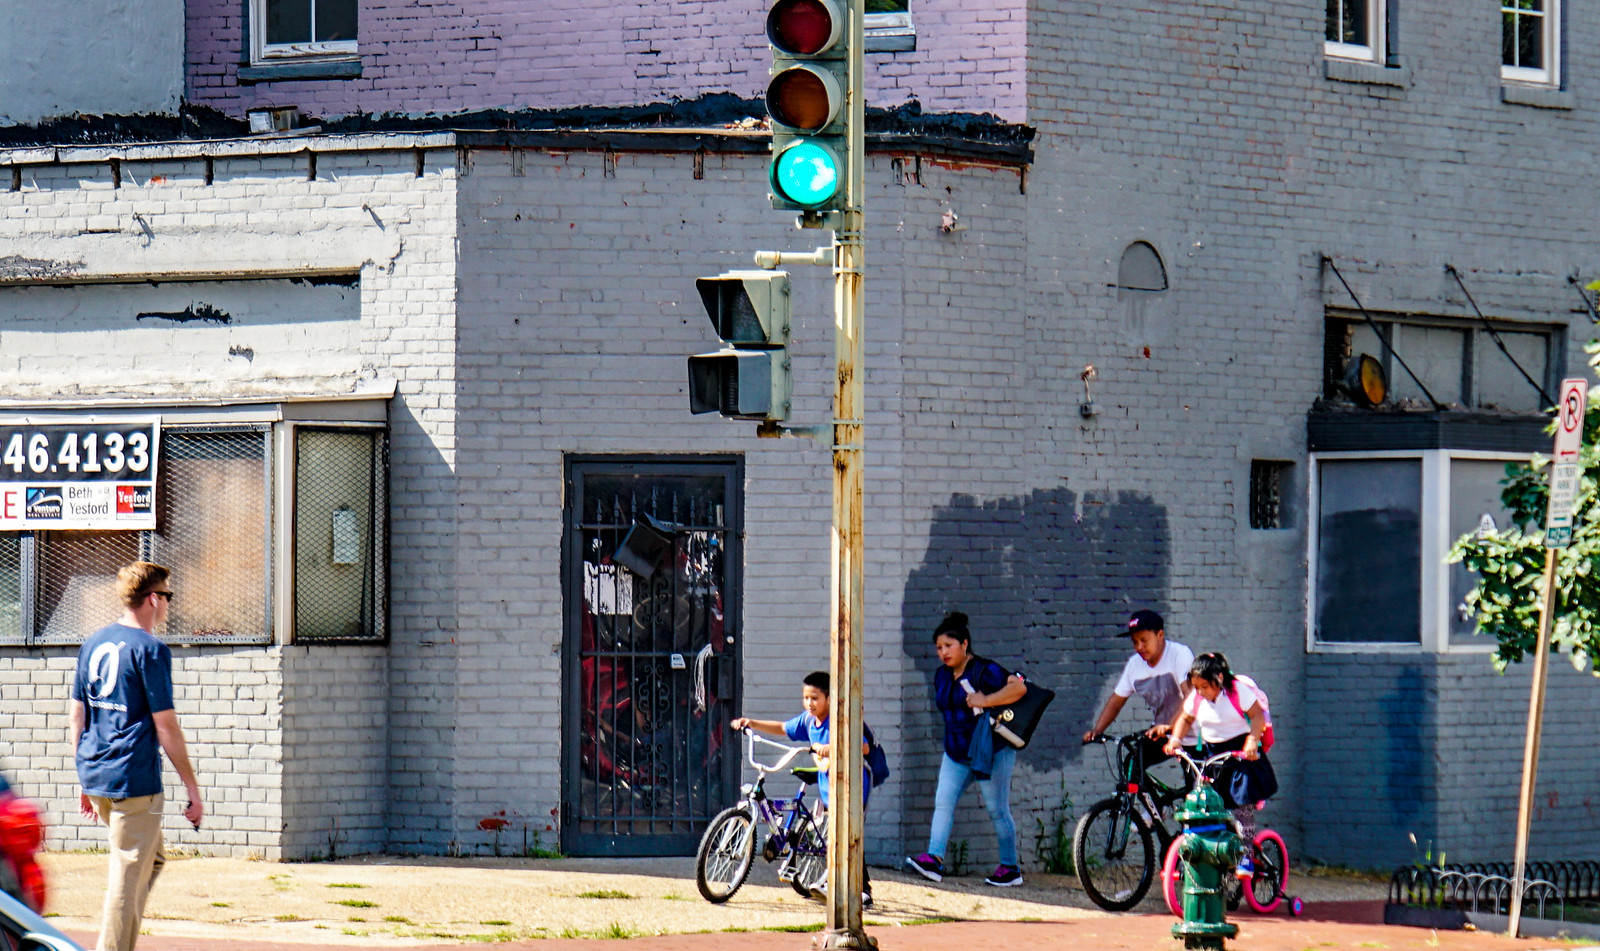 Thanks for publishing my photo of Shaw, DCist, in Go Home Already & my comments on new book by Derek Hyra